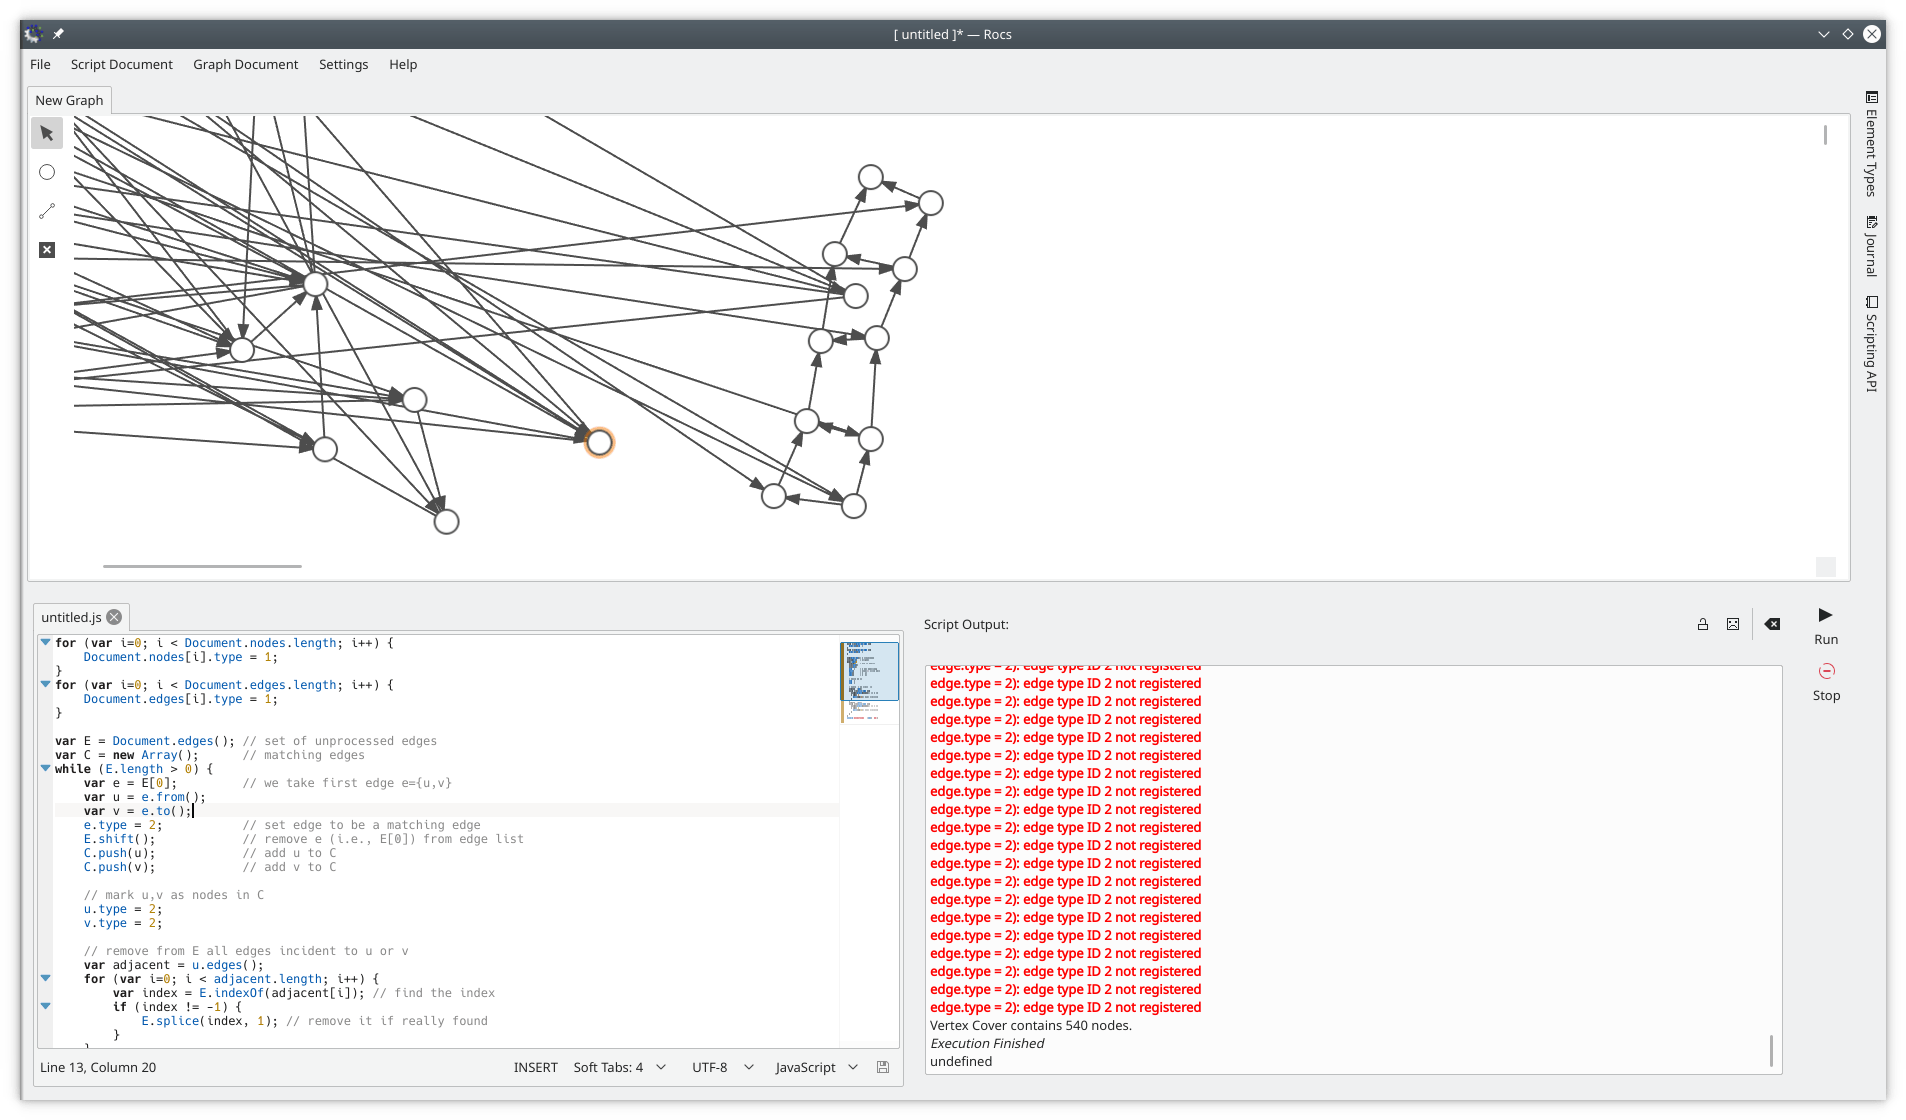 hight resolution of rocs is a graph theory ide for designing and analyzing graph algorithms it provides an easy to use visual editor for creating graphs a scripting engine to